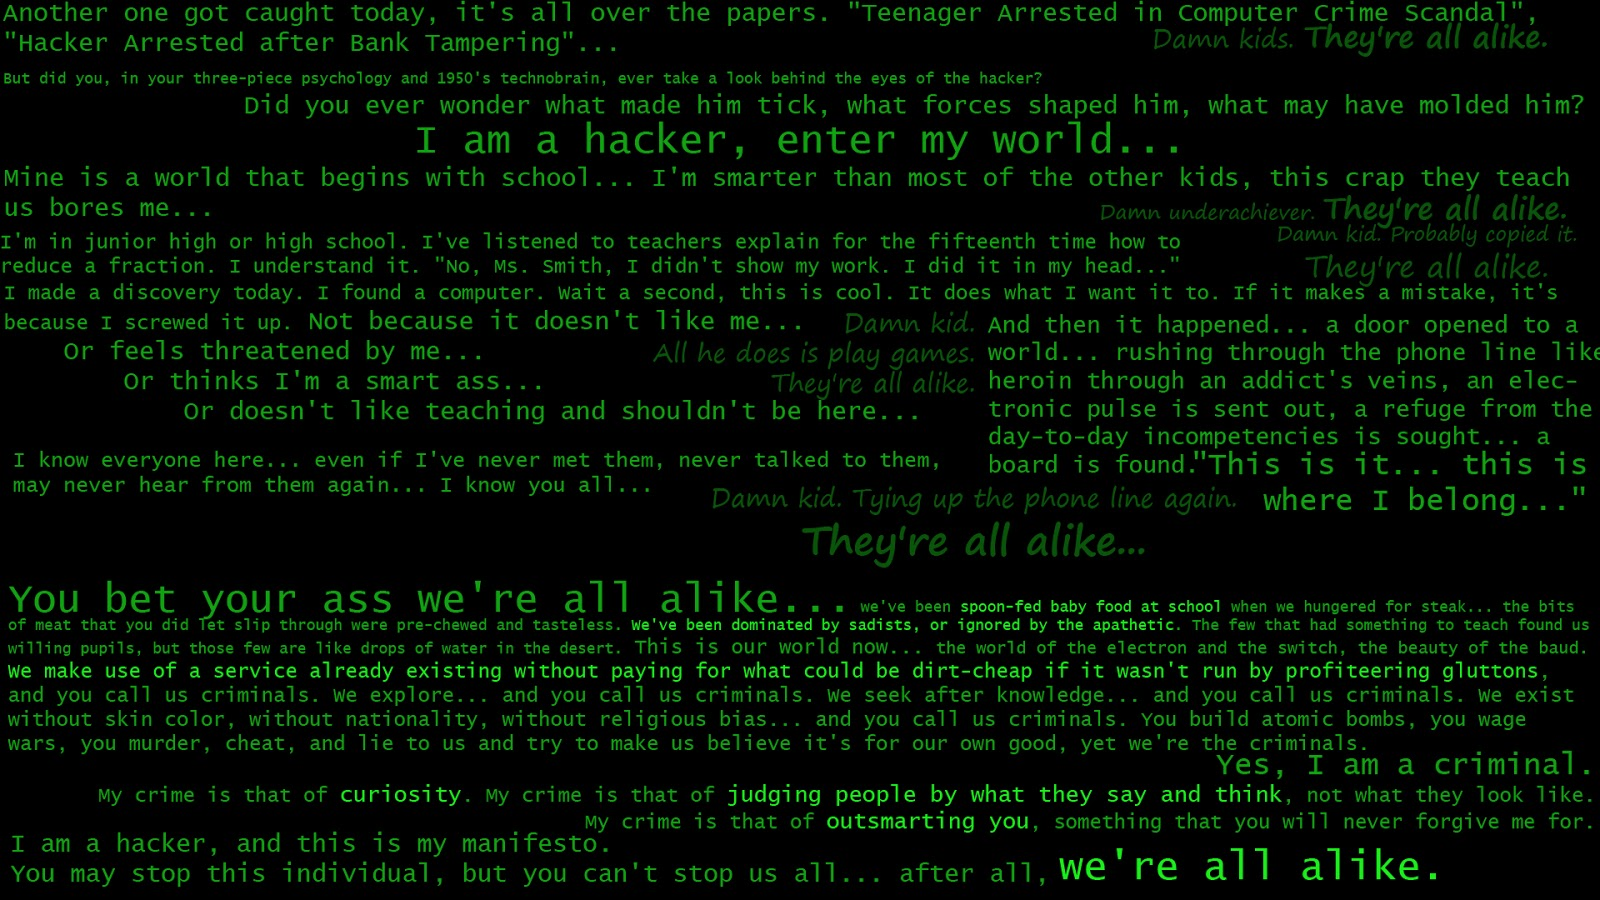 Best HD Hackers Wallpapers Part VI - Wanna Be hacker | Tricks and Tips | All technology News